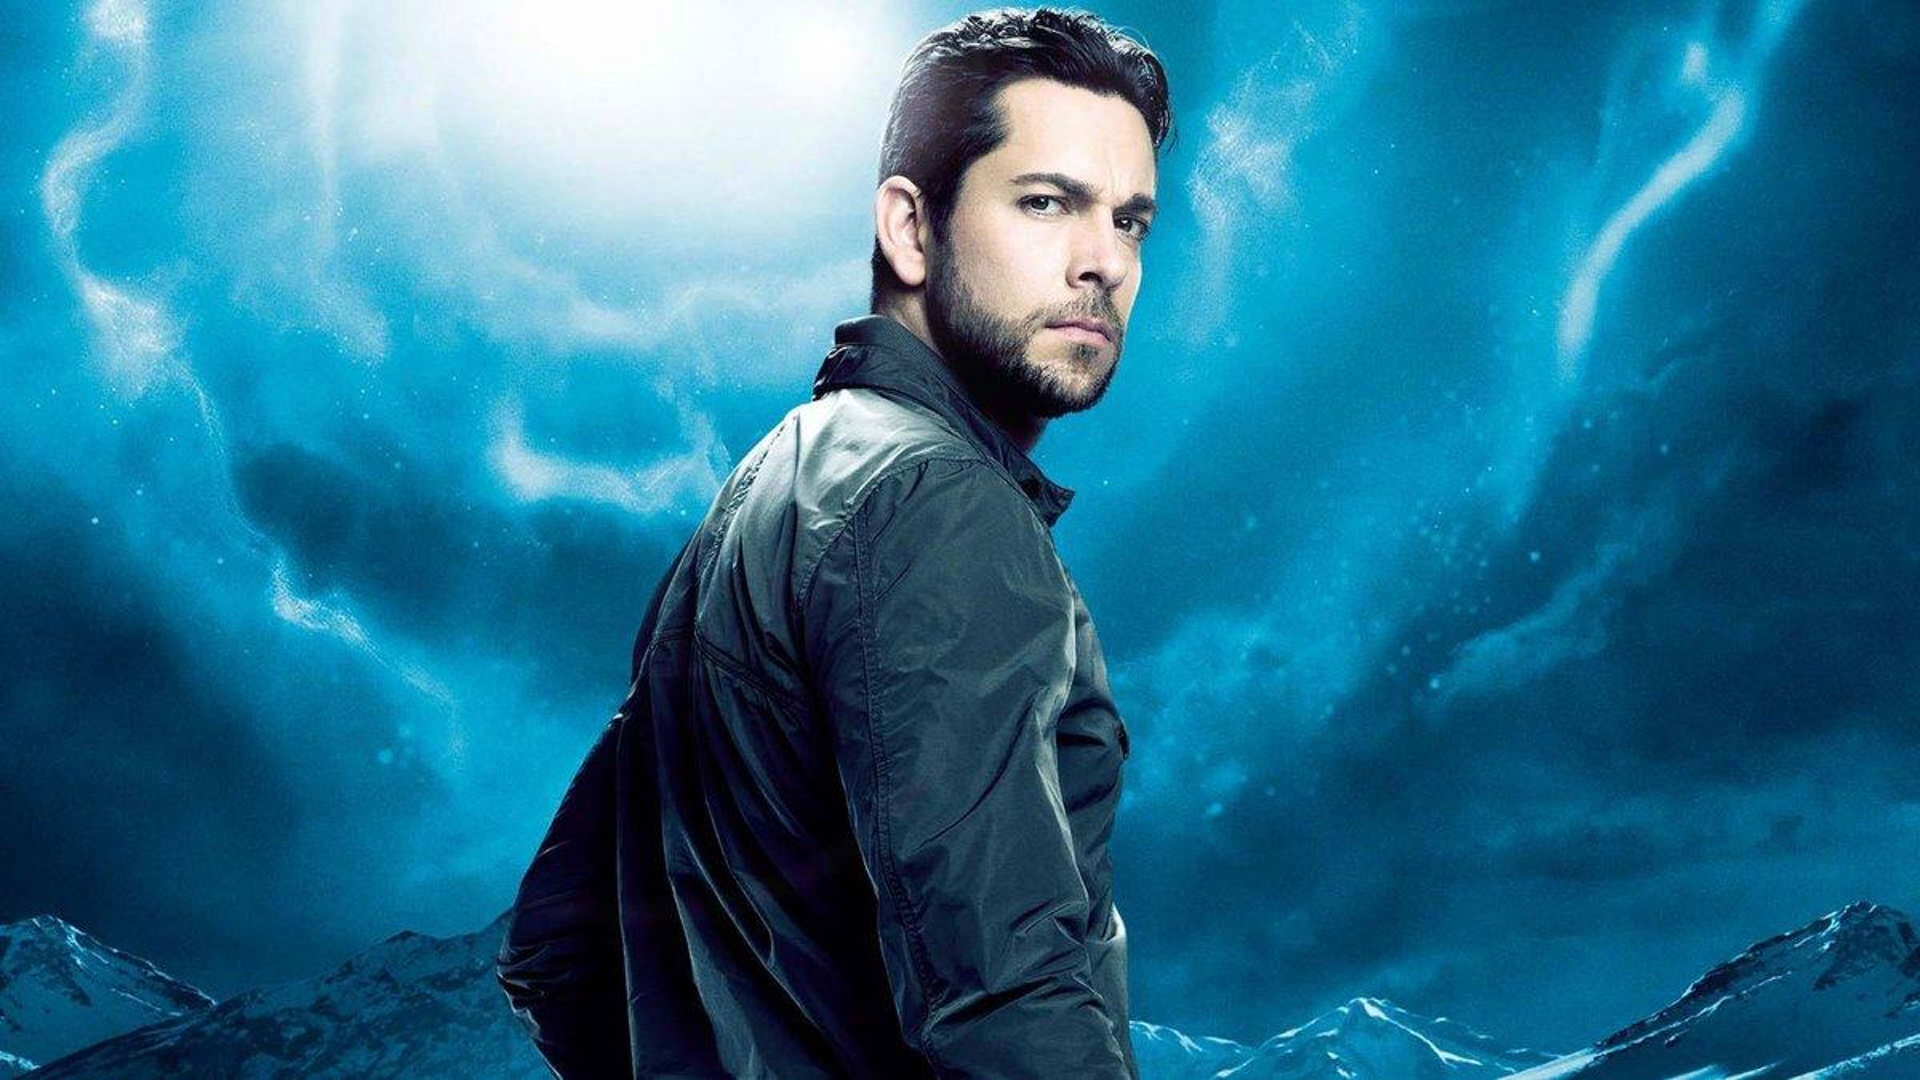 Zachary Levi Wants To Play Nathan Drake In The Uncharted Movie If